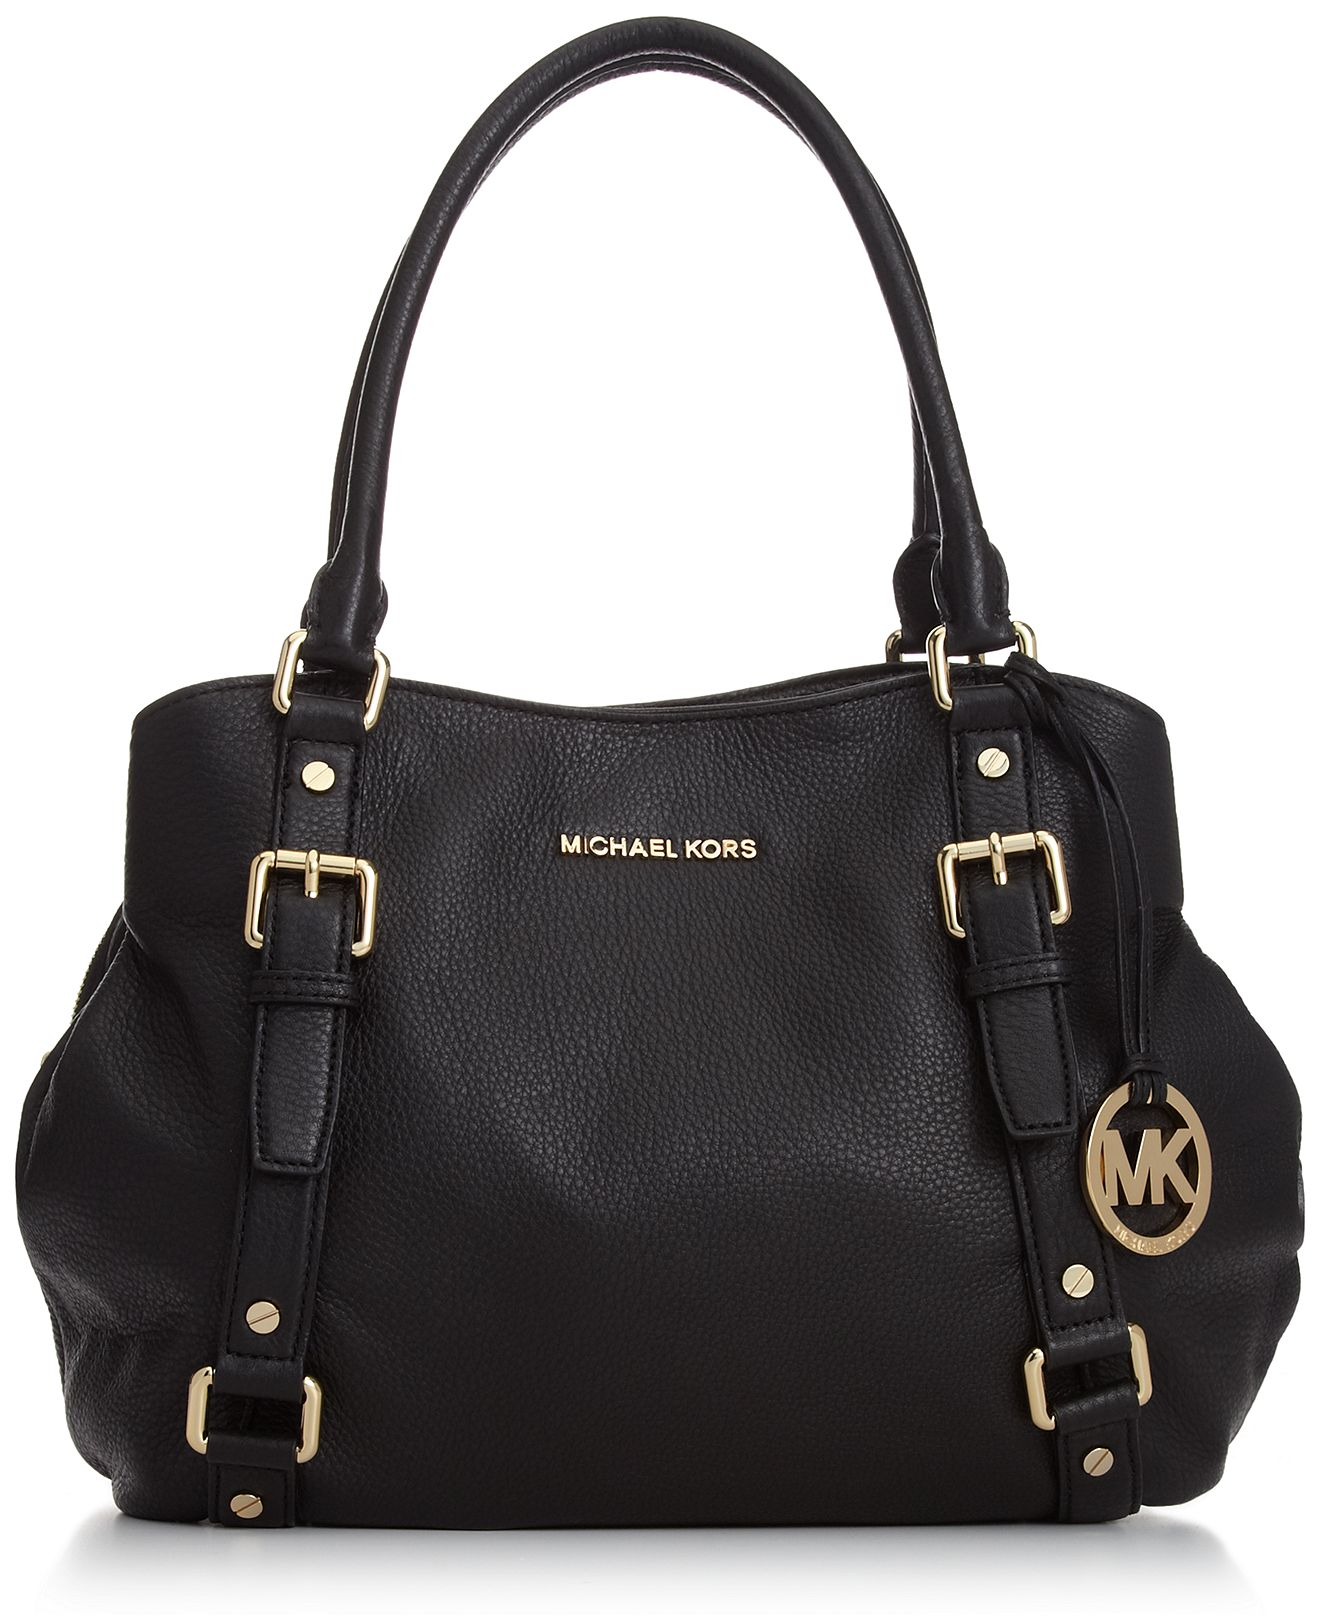 21 verified Michael Kors coupons and promo codes as of Dec 2. Popular now: Shop Up to 60% Off Michael Kors Sale Handbags. Trust a3rfaktar.ml for Womens Clothing savings.